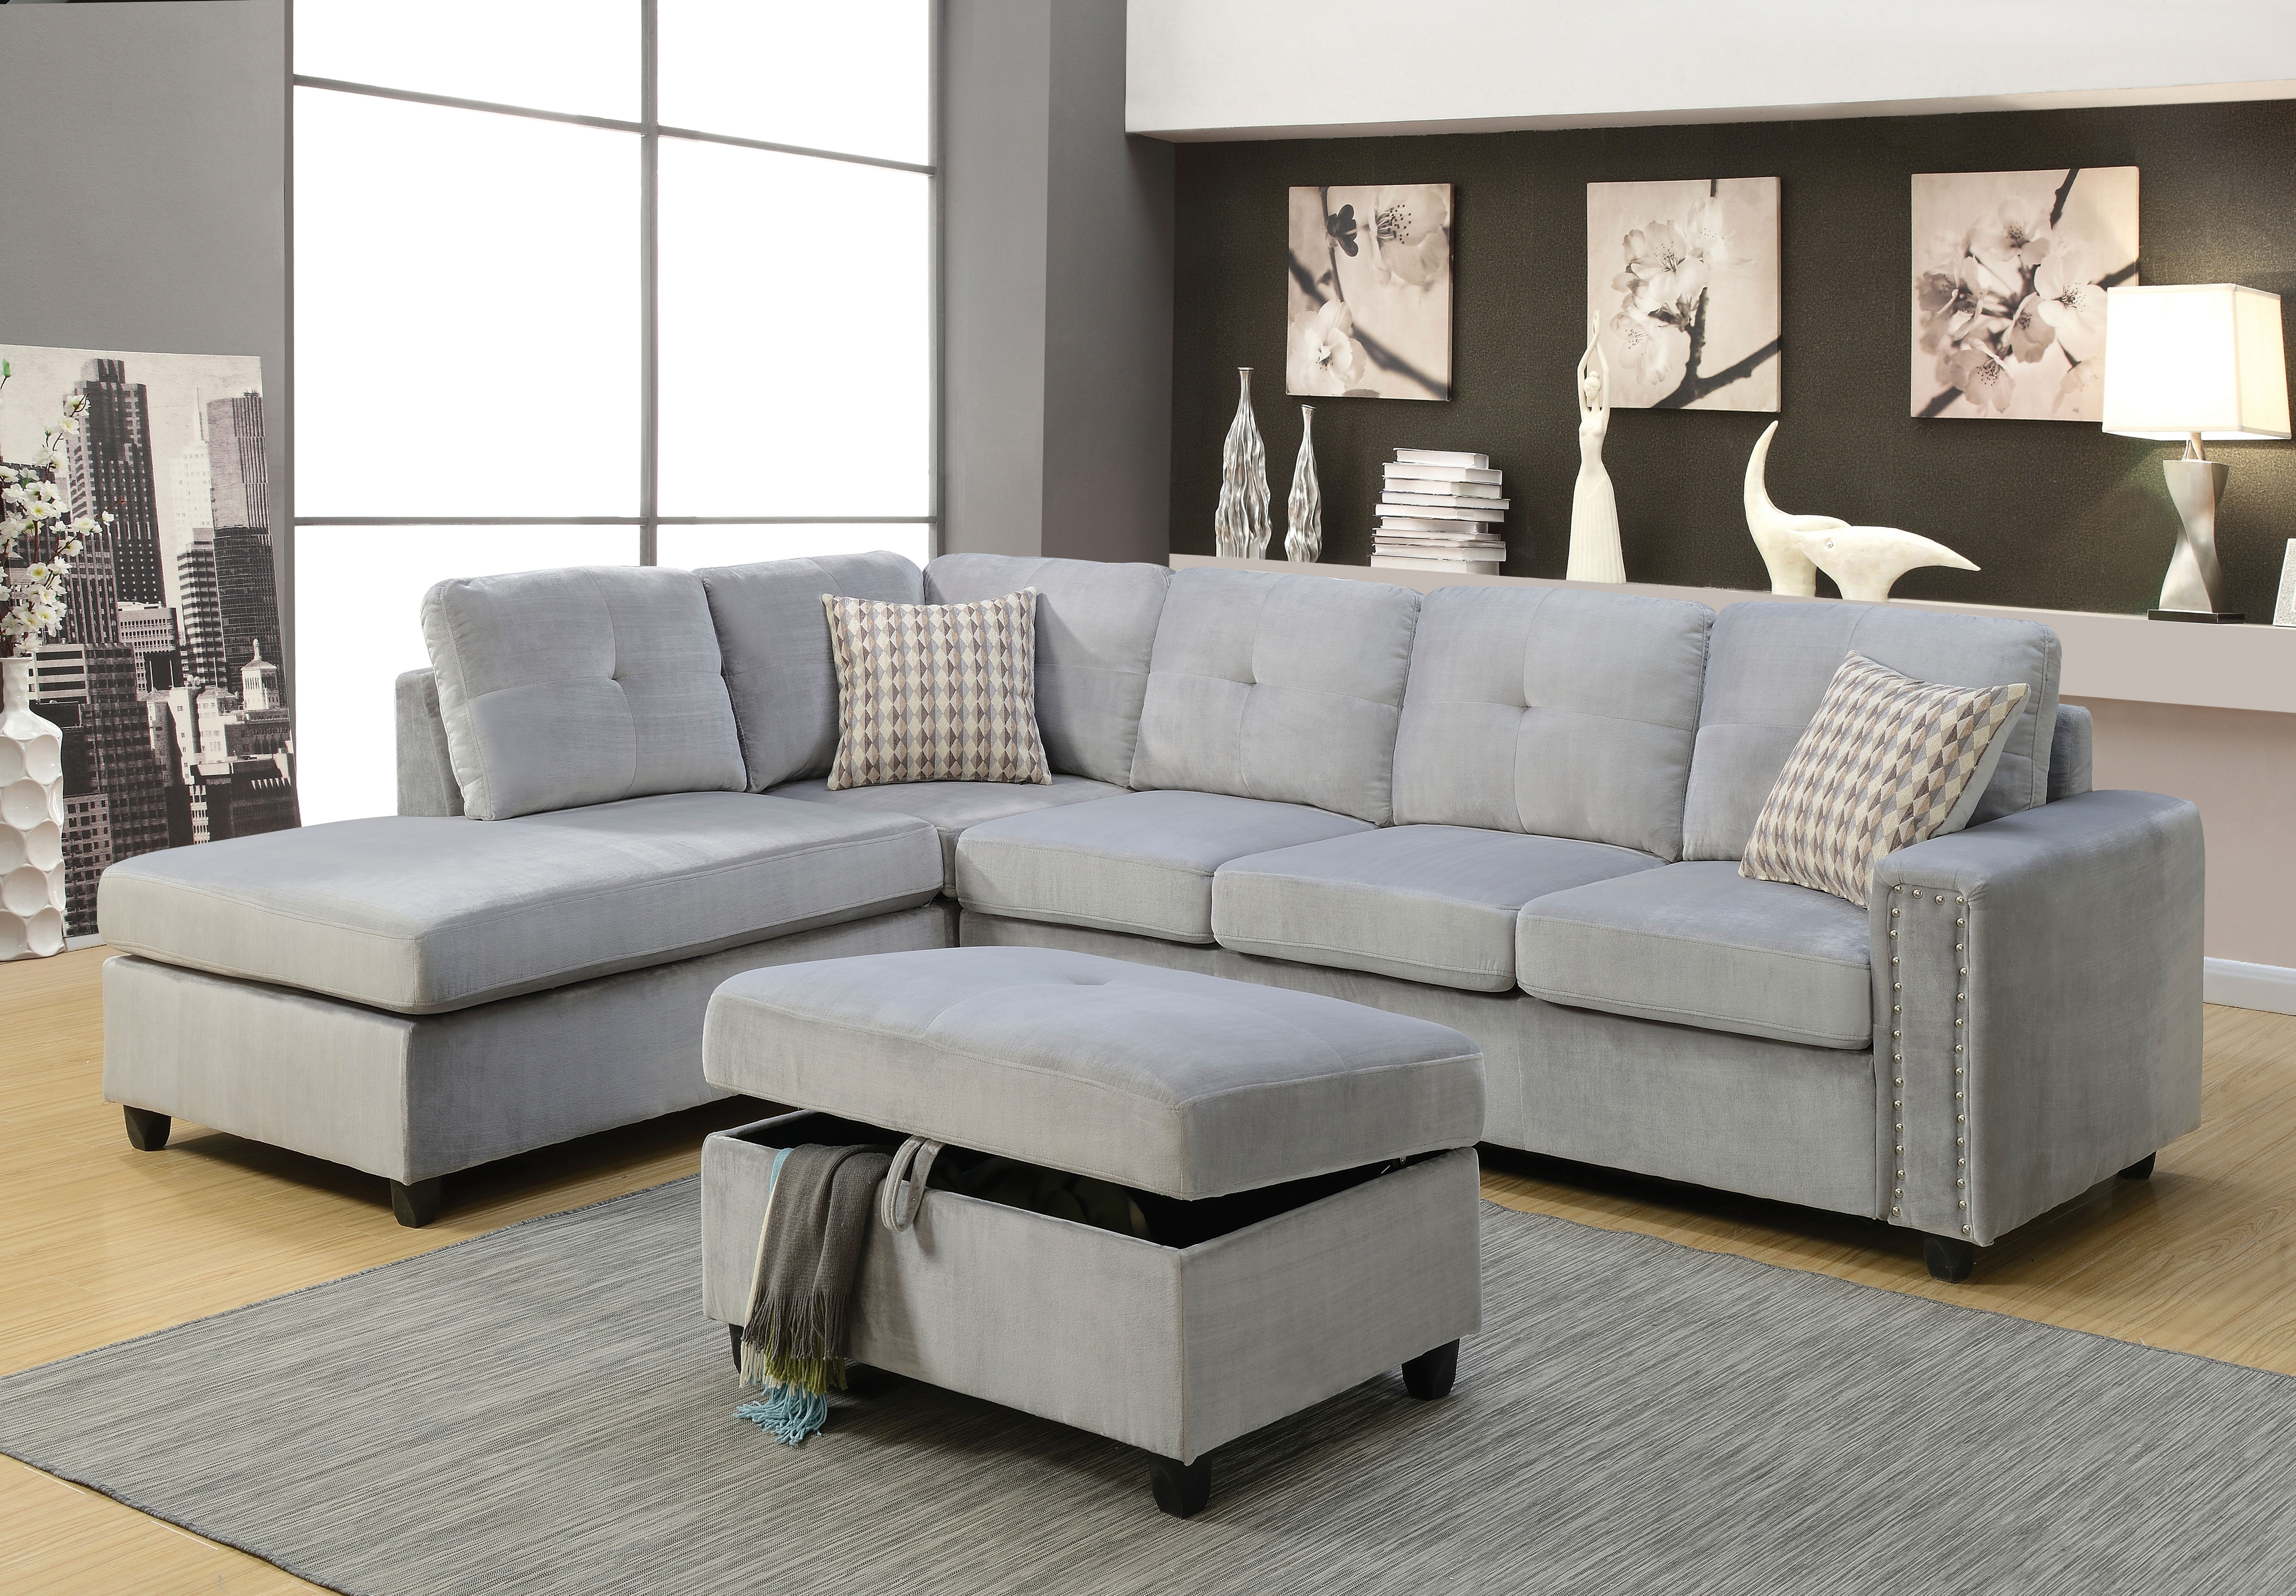 Popular Gray Sectional Sofa Plus Also Modular Couch Plus Also Microsuede With Microsuede Sectional Sofas (View 18 of 20)